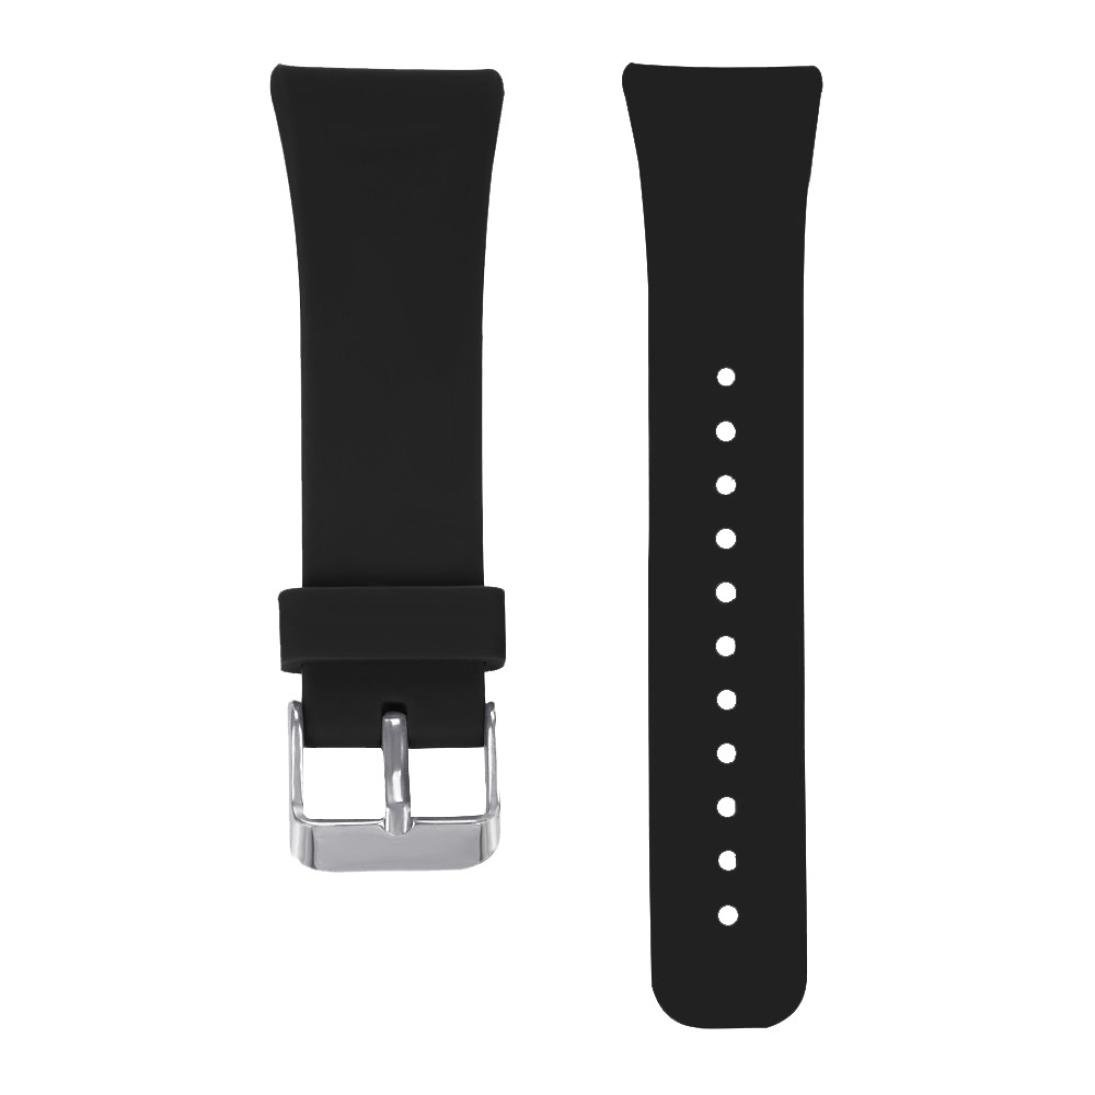 Alonea For Samsung Gear Fit2 Pro Fitness, Sports Silicone Watch Replacement Band Strap (Black) by Alonea (Image #4)